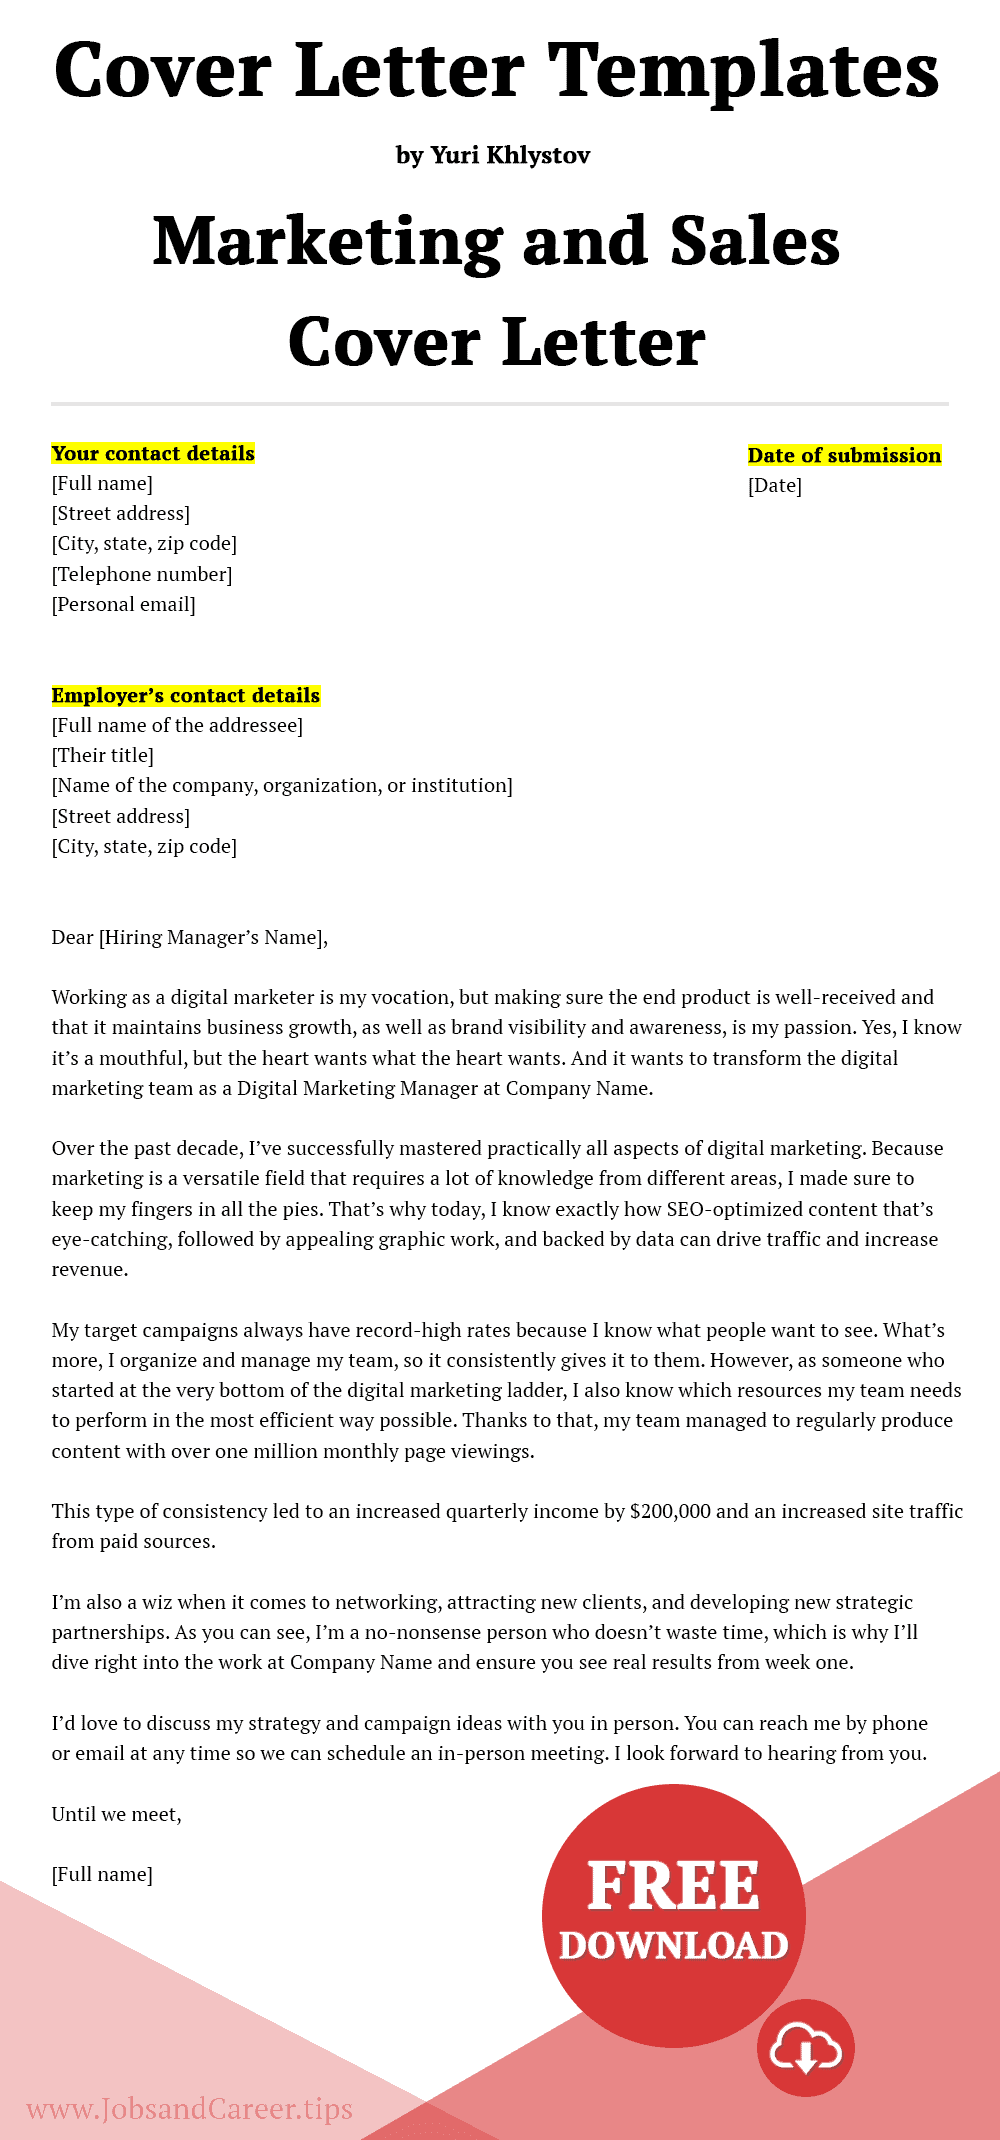 Click to download the marketing and sales cover letter template